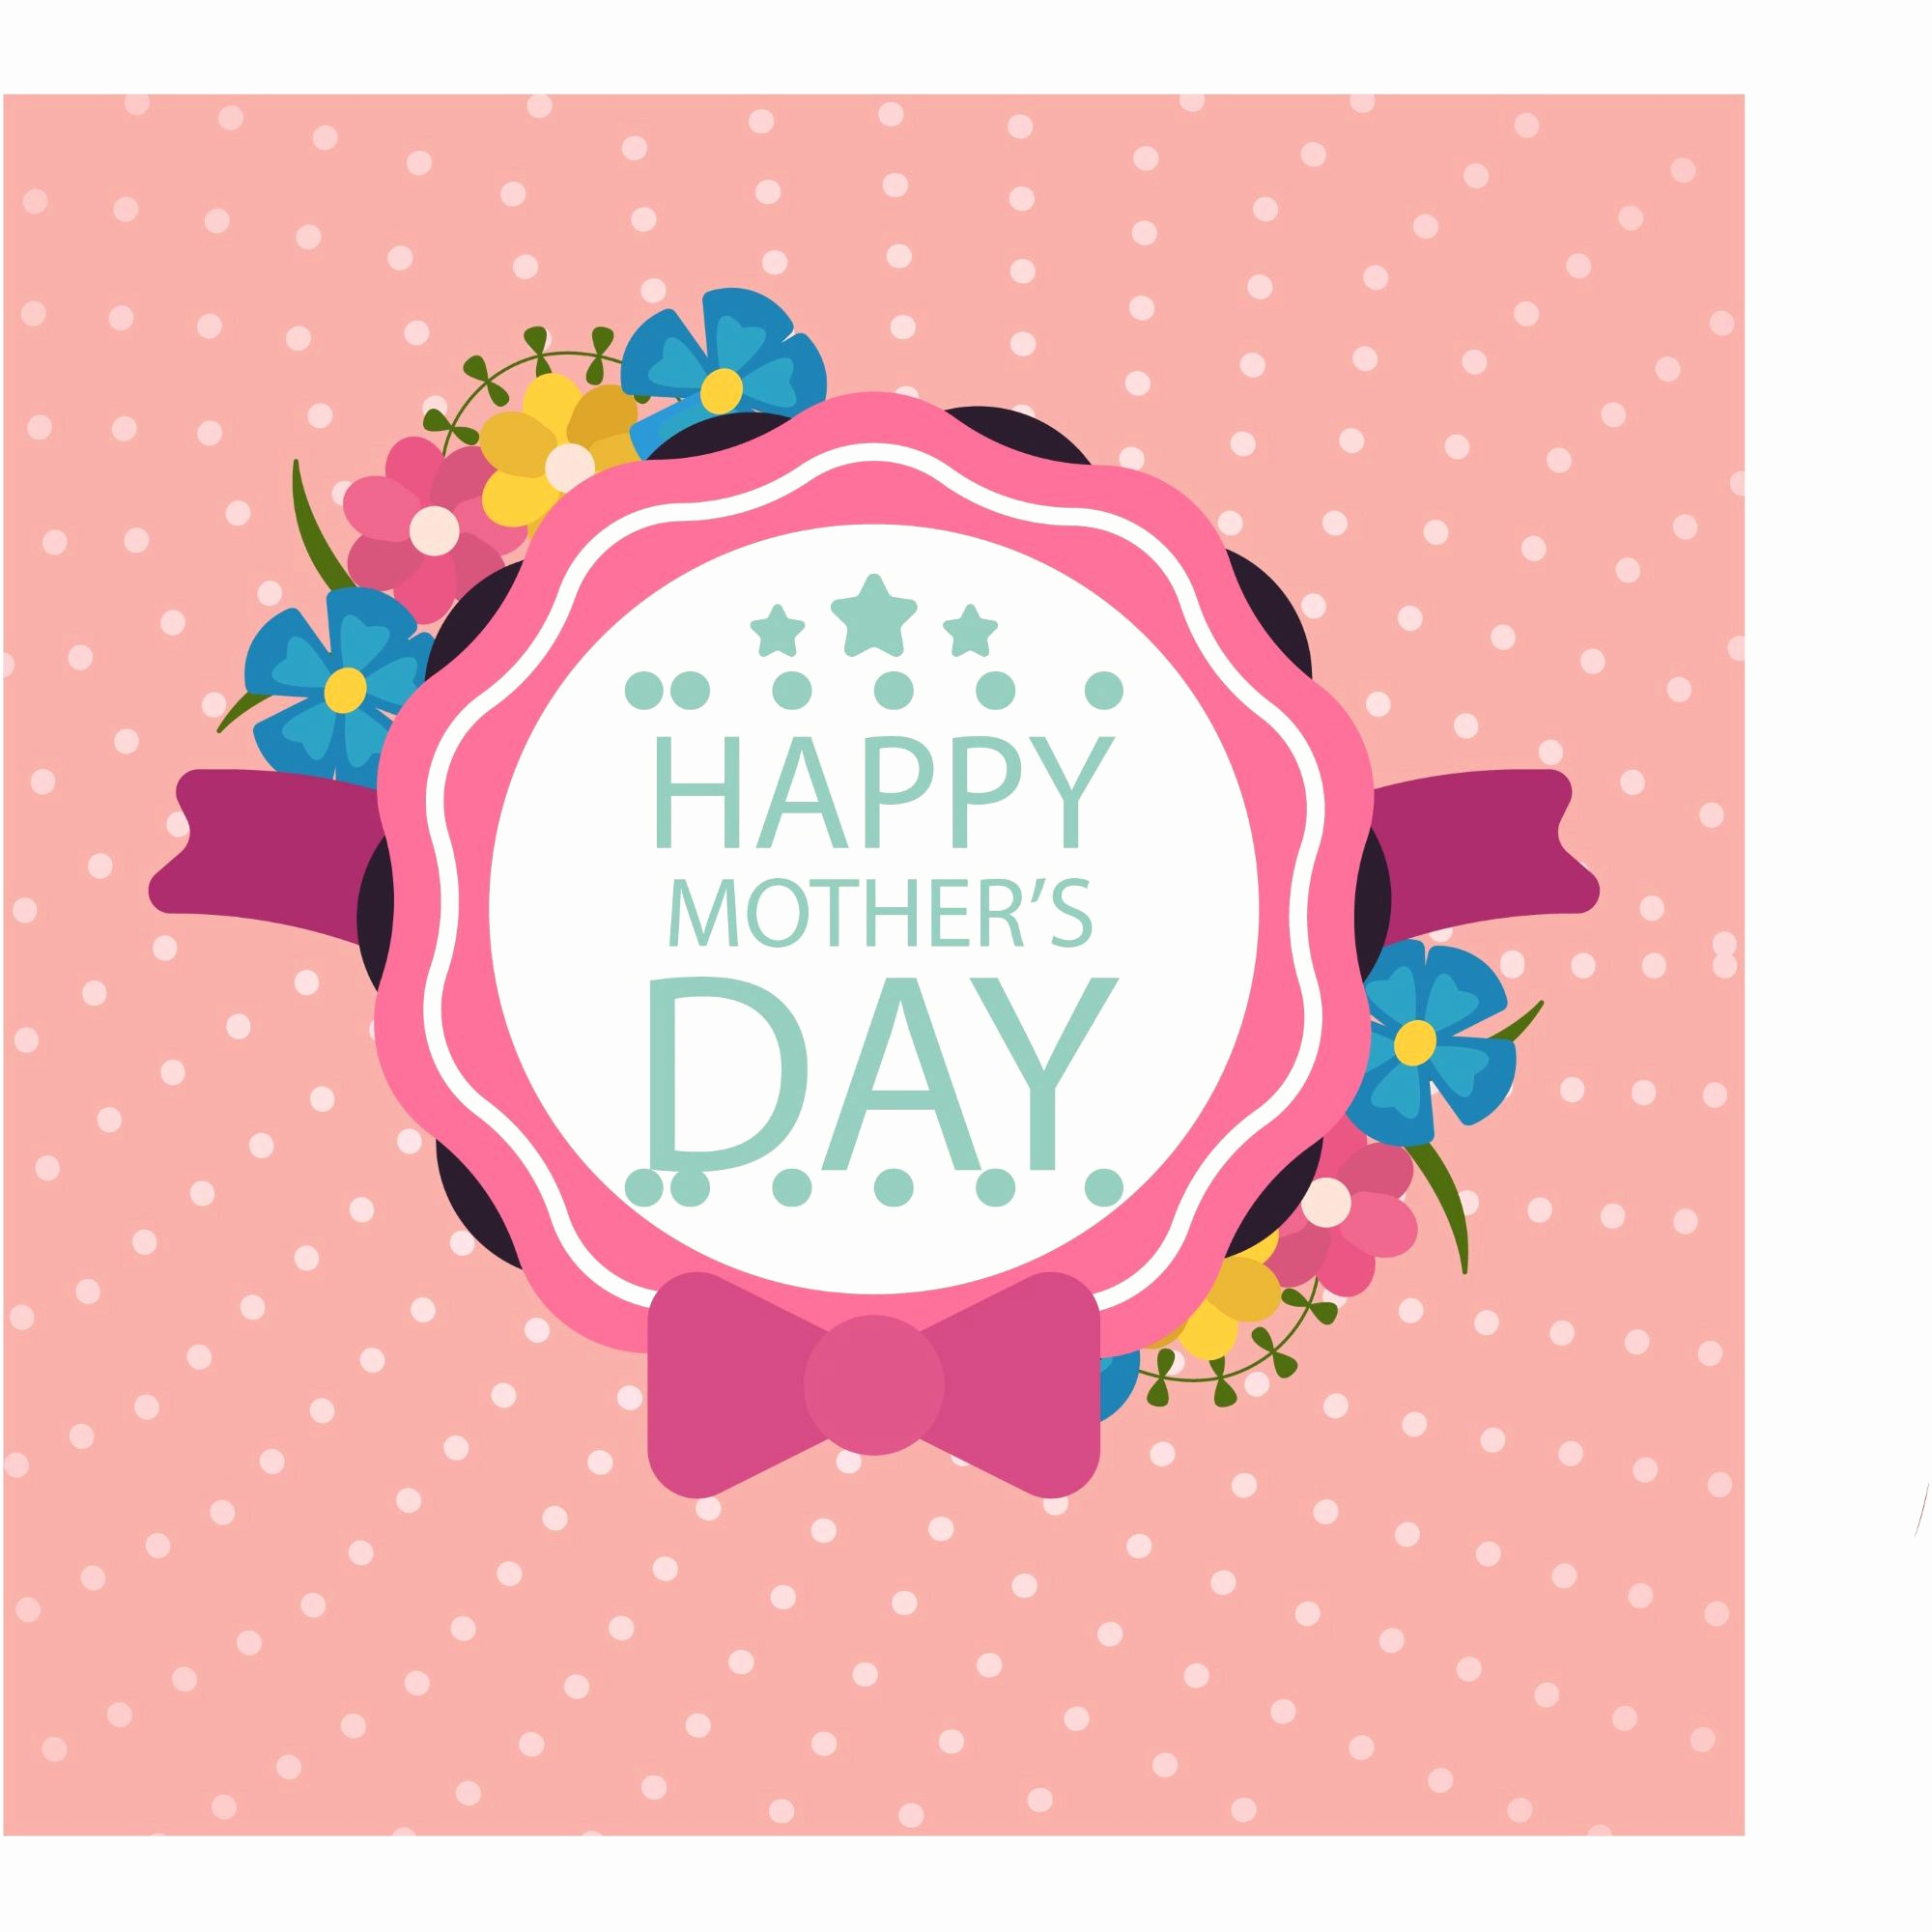 Mothers Day Menu Template Elegant Happy Mother S Day Layout Design with Roses Lettering